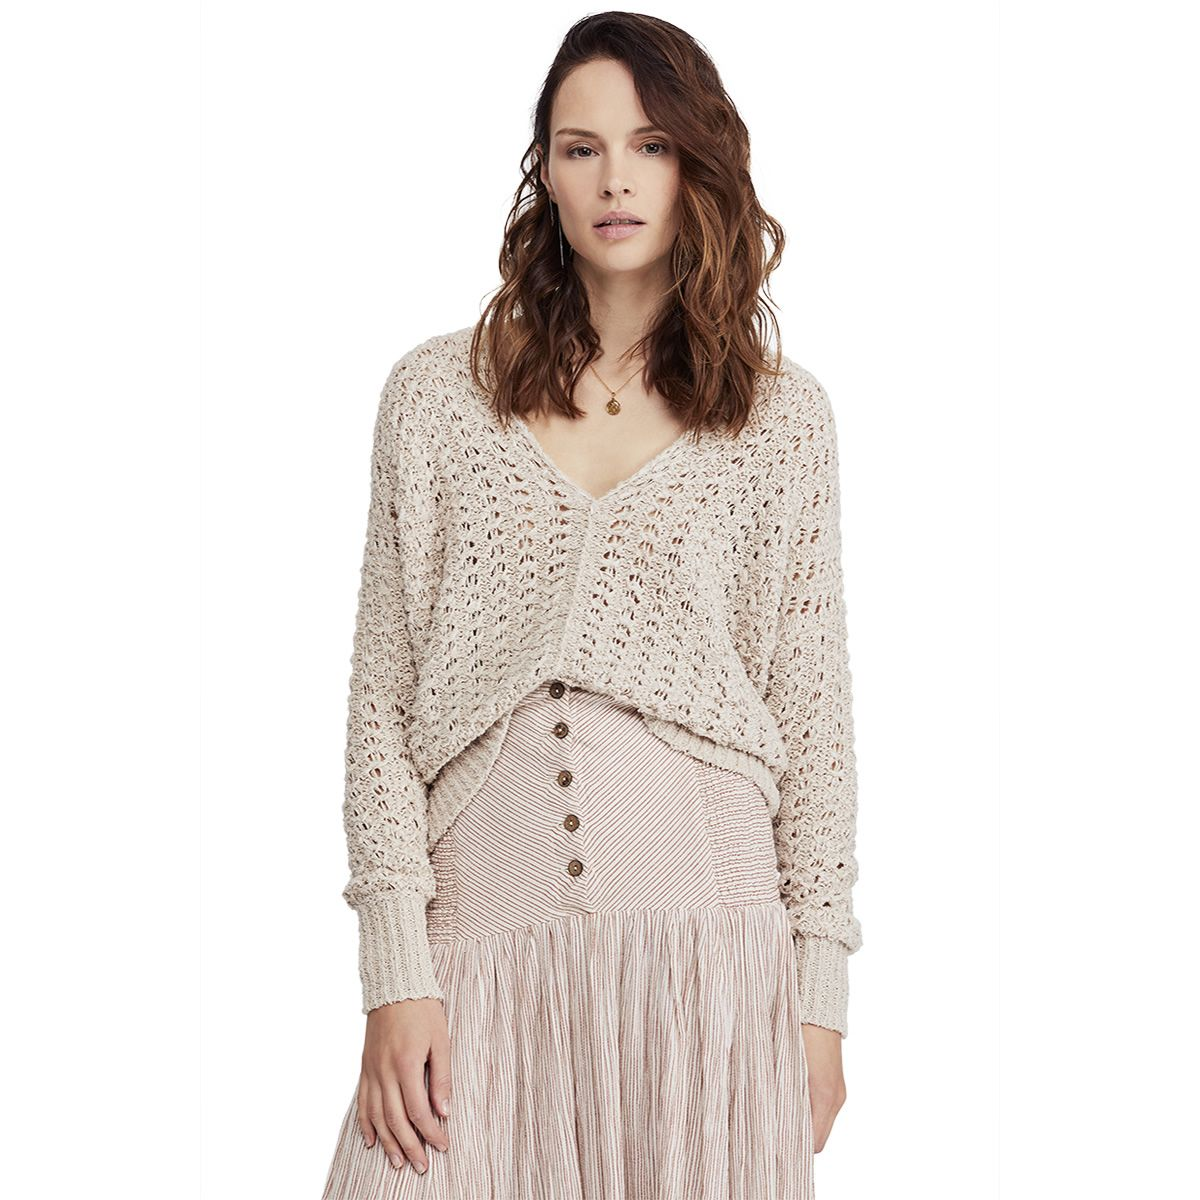 9d7b29d21 Free People Clothing - Womens Apparel - Macy s